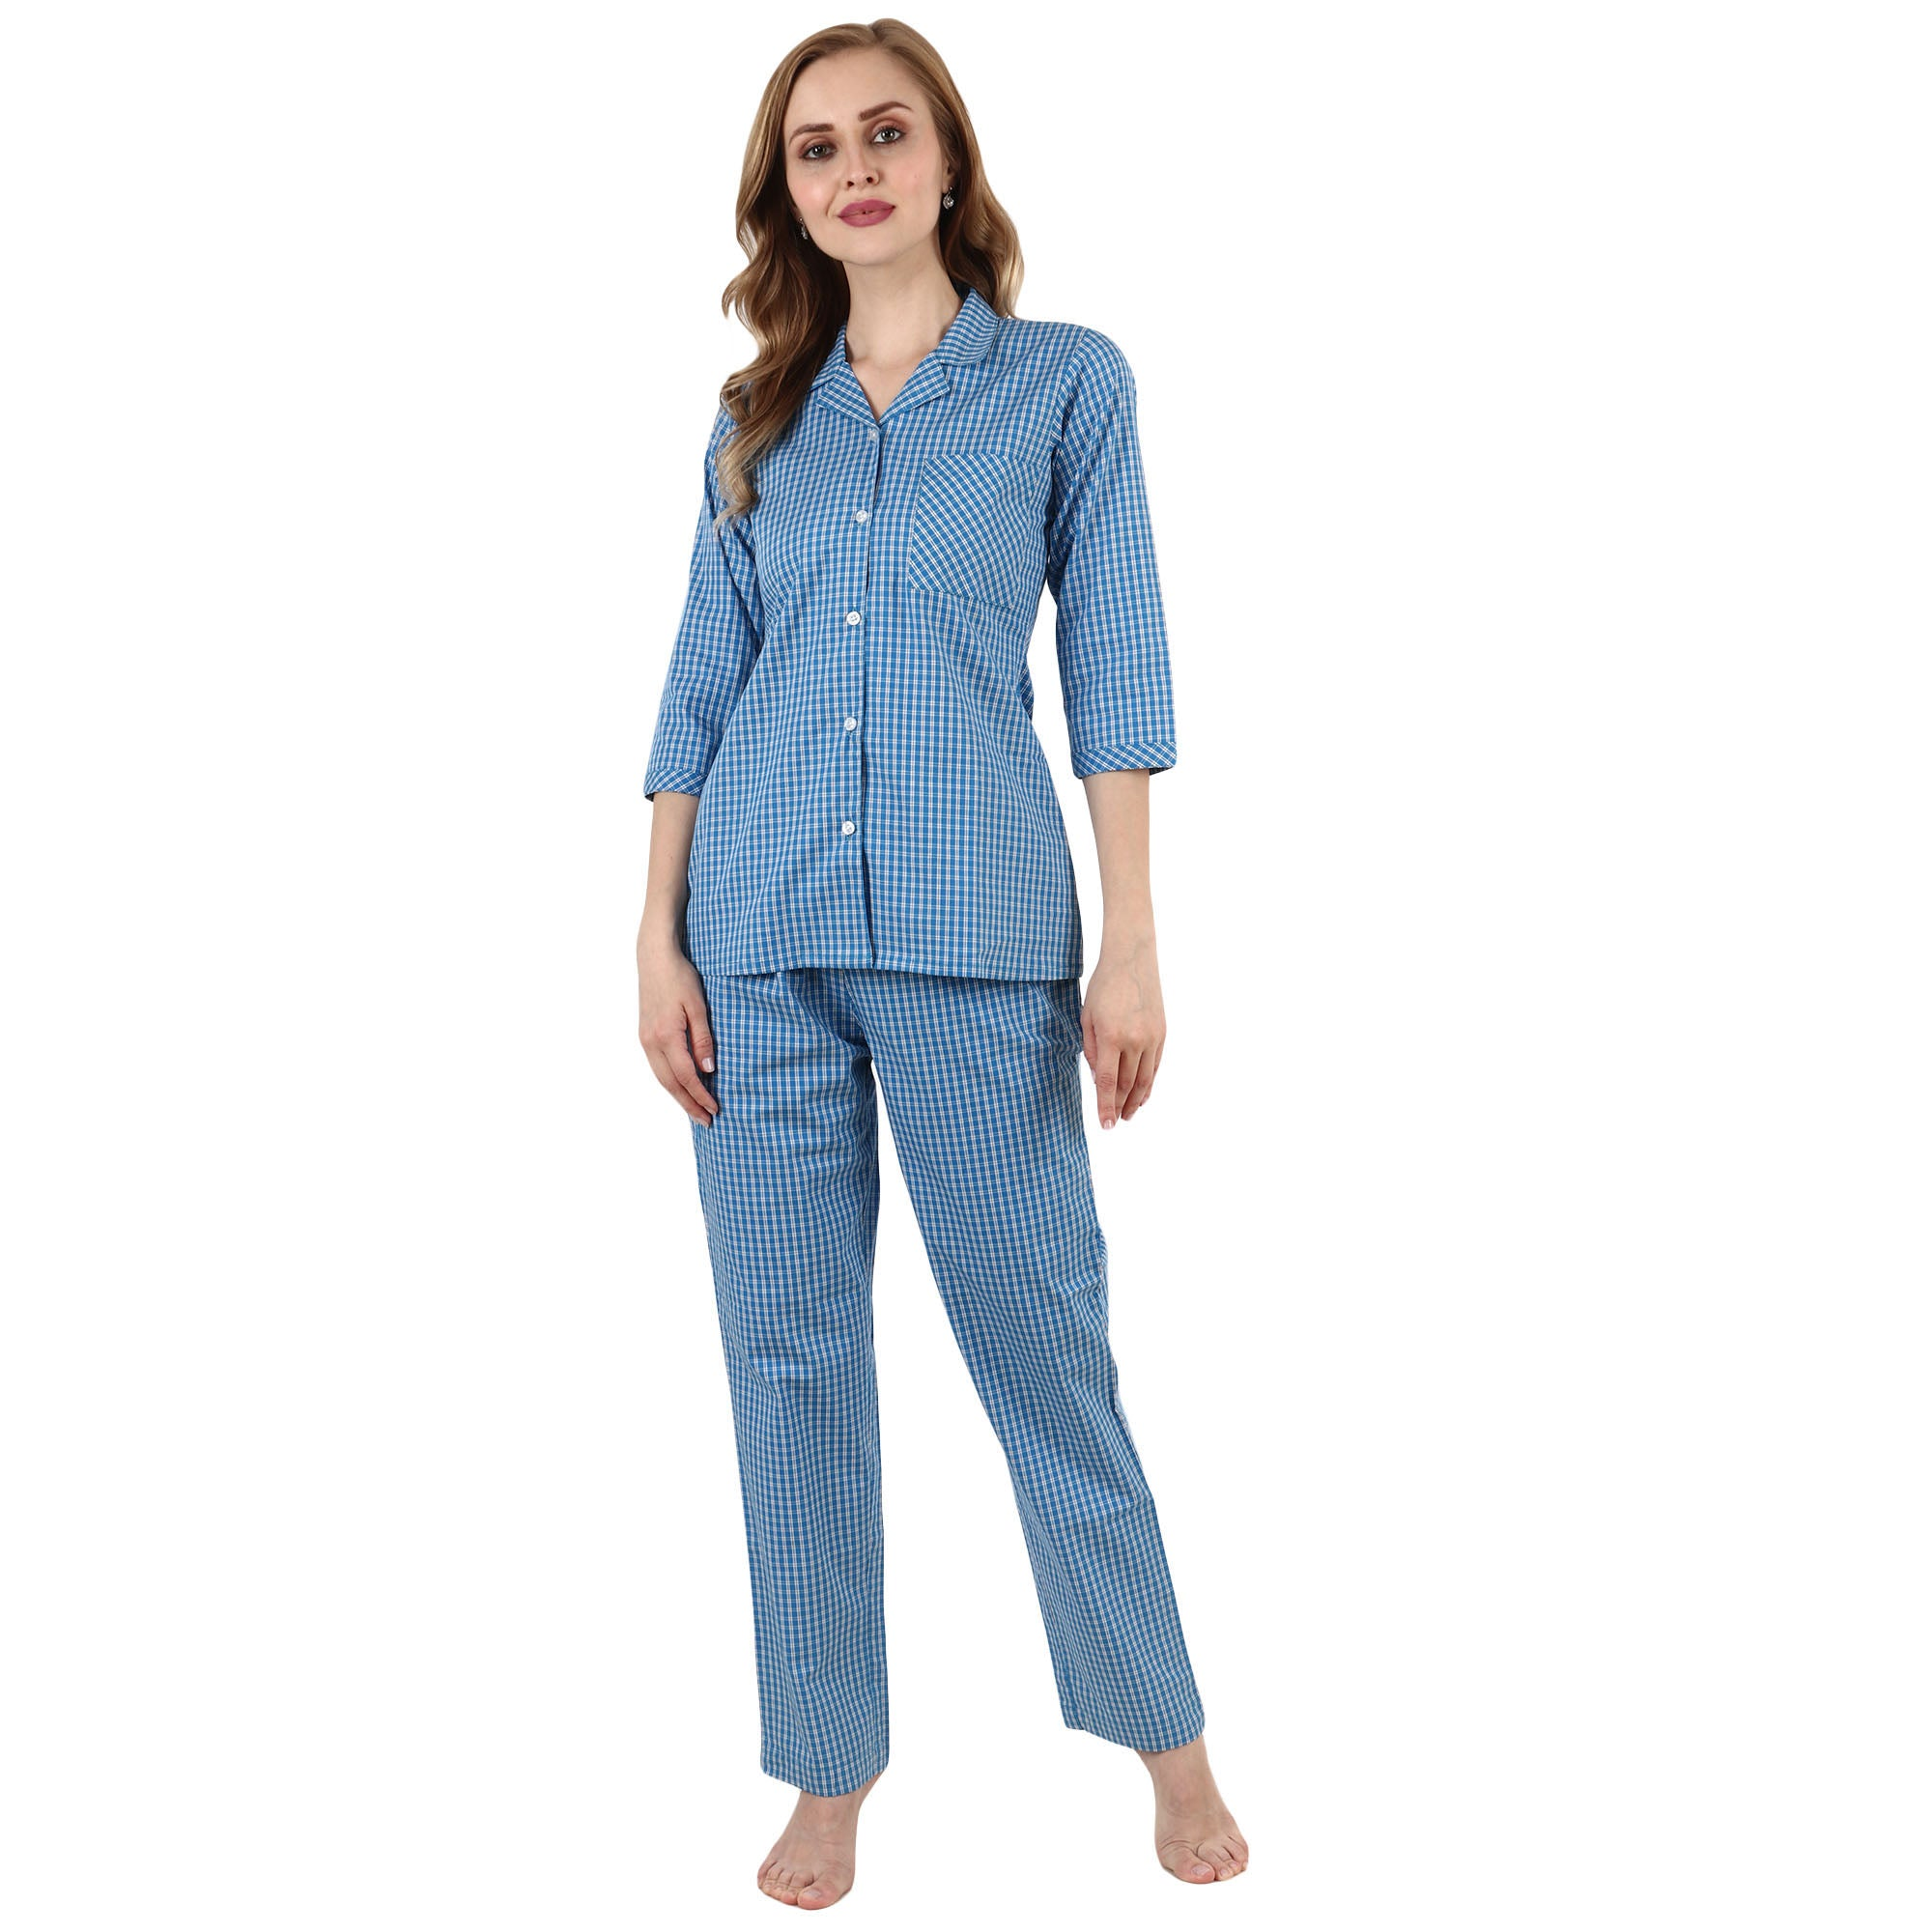 3/4 SLEEVES, all size, all sizes night suits, apella, best online store, blue, cotton night suit, lounge wear suits, nigt suits online, notched collar, plus size, plus size night suits, poly